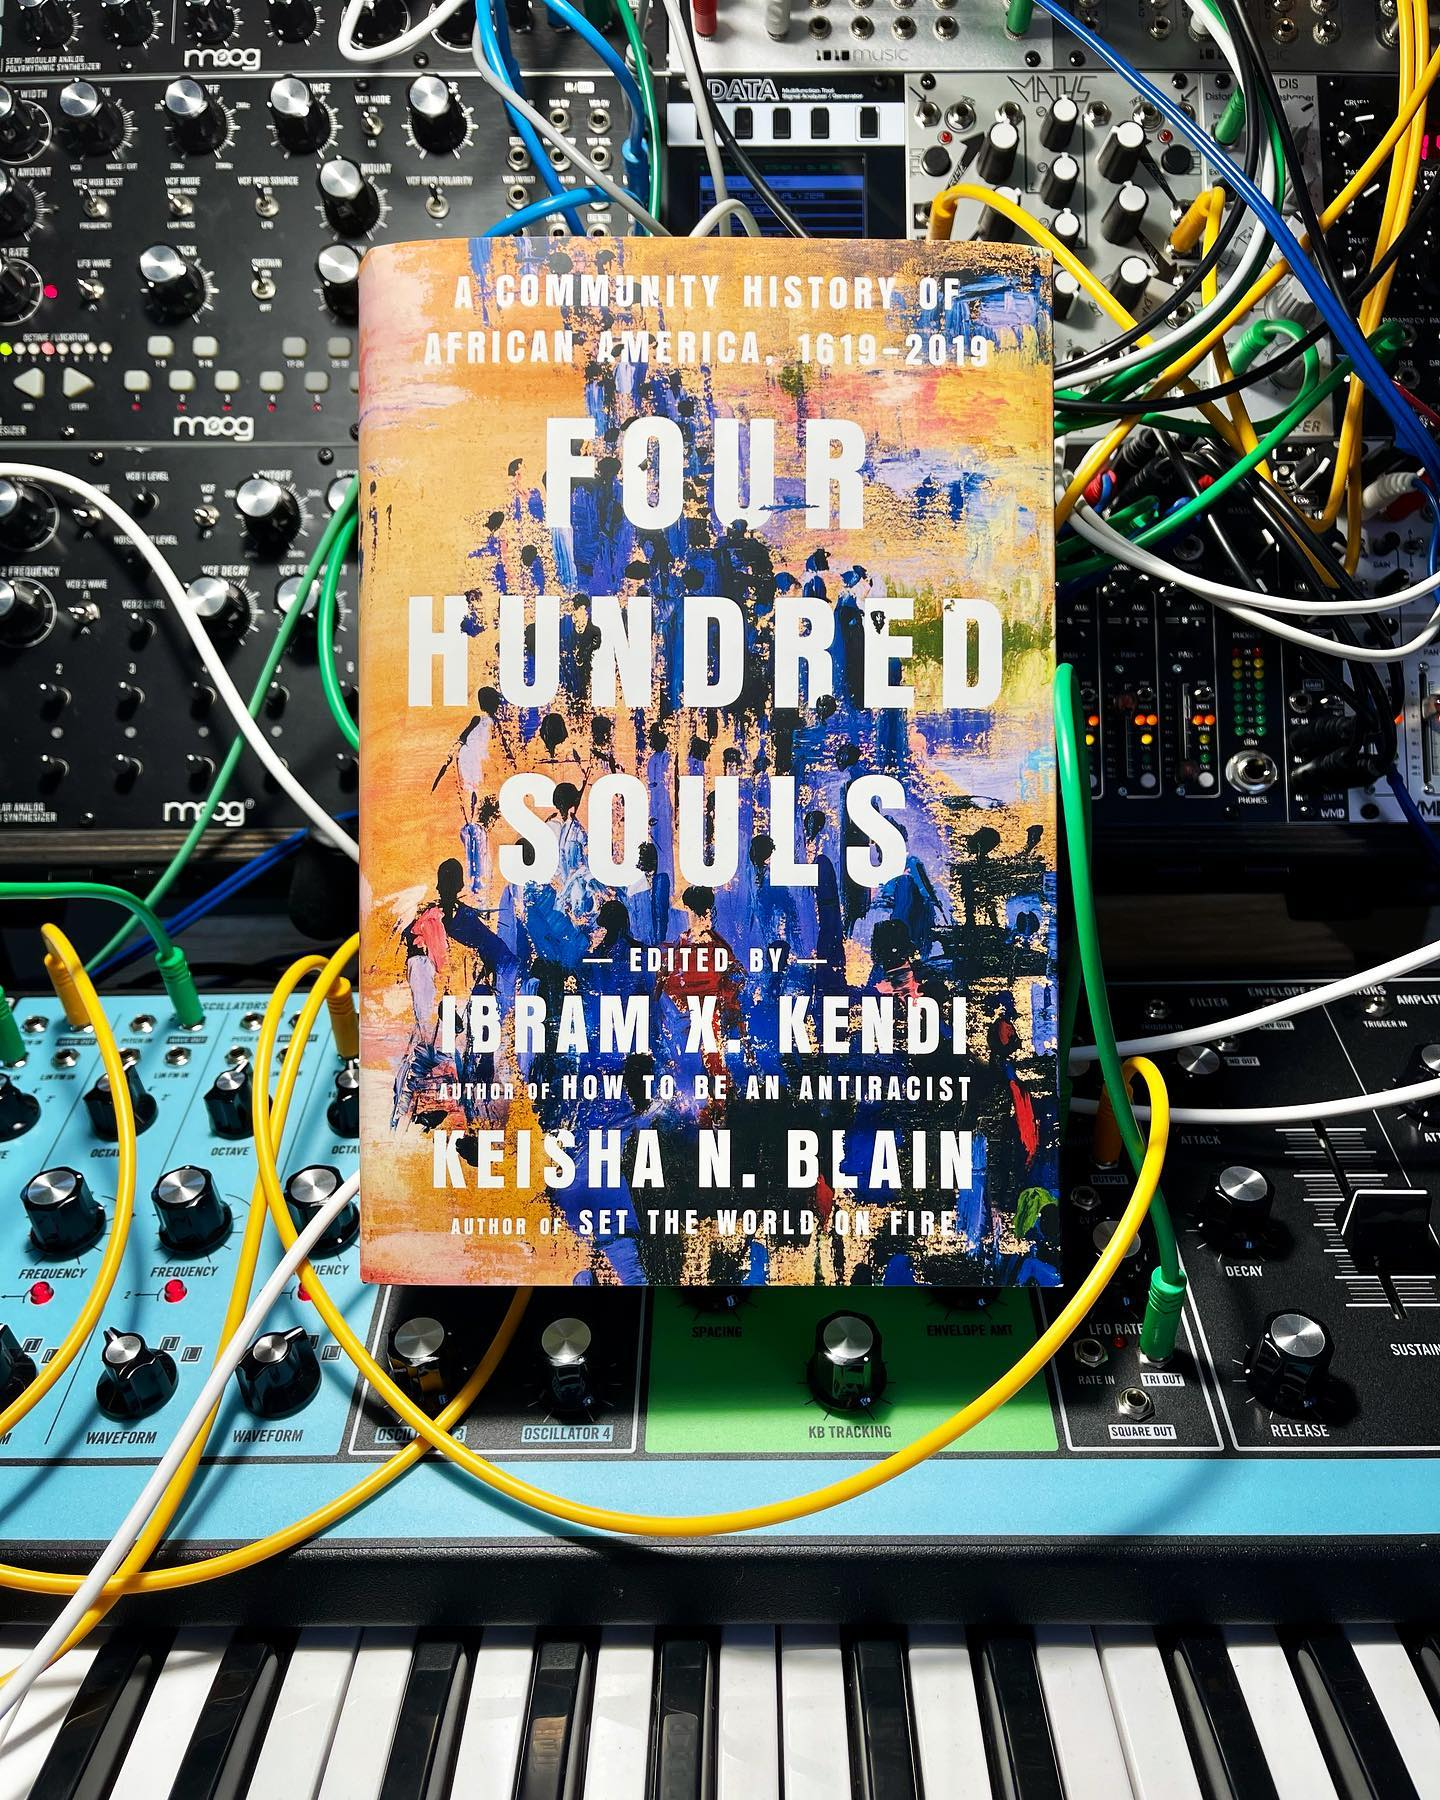 Four Hundred Souls arrived last week by @Ibramxk and @keishanblain #400Souls #BHM